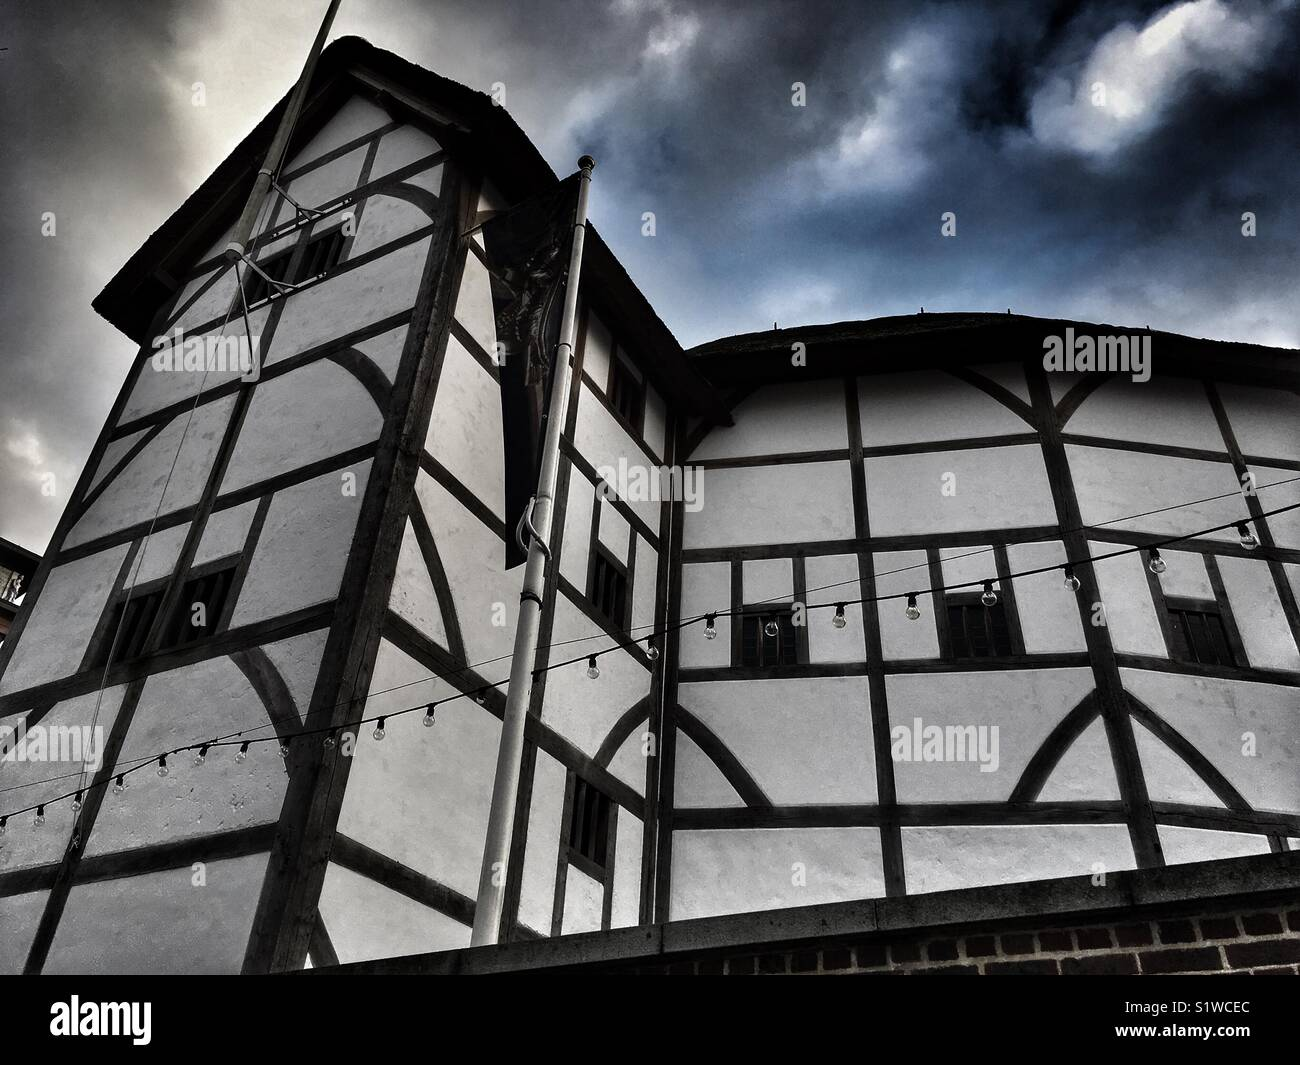 Shakespeare's Globe at Bankside in London, England - Stock Image